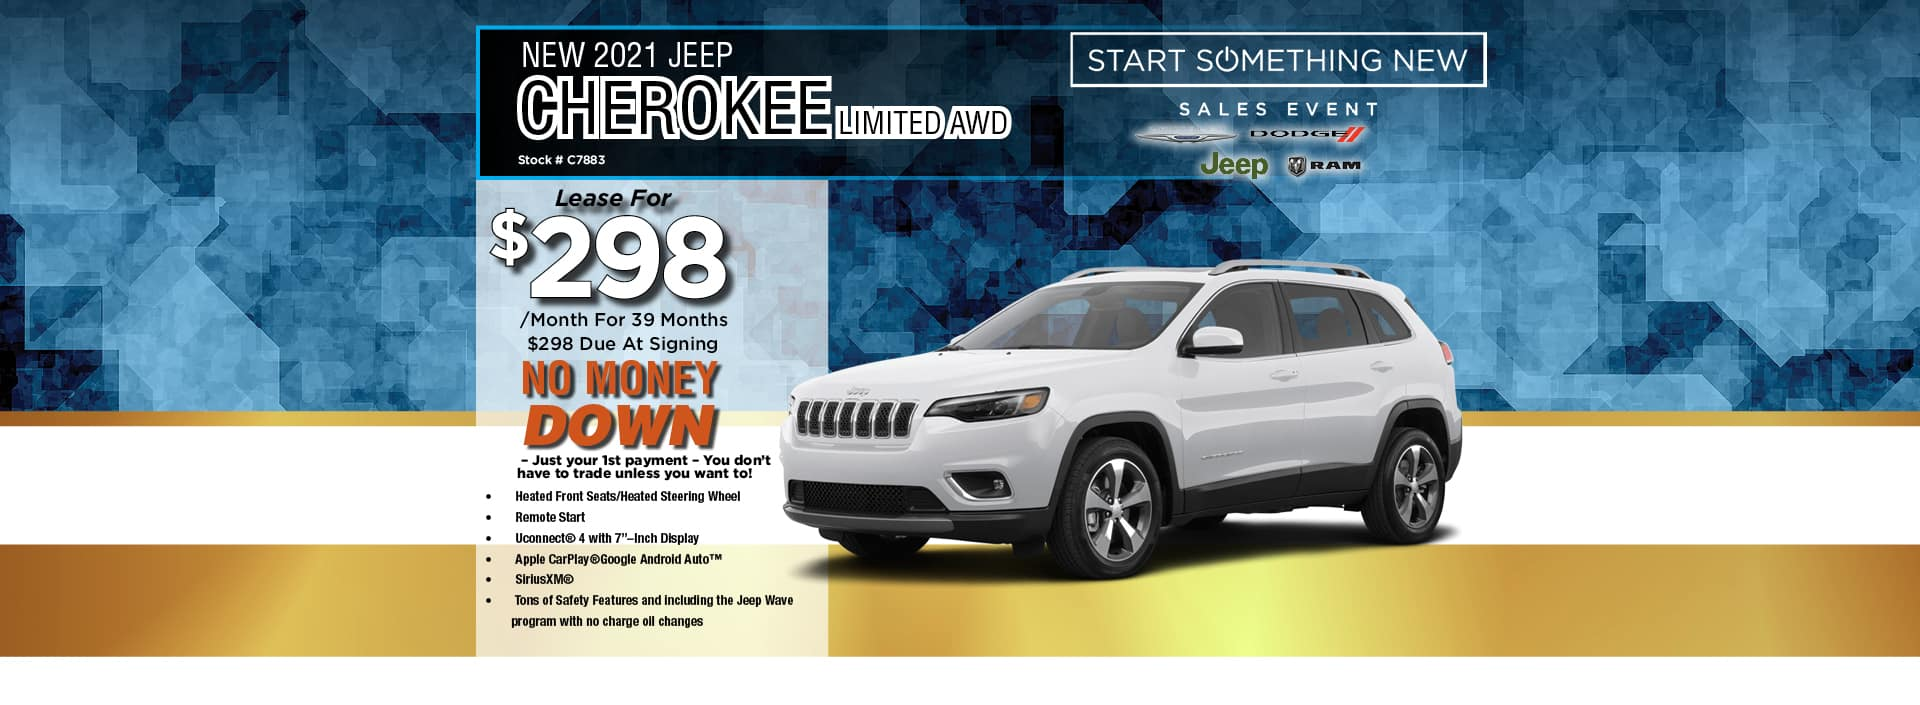 011.390.01_Midstate_1920x705_Cherokee_Dealer Web